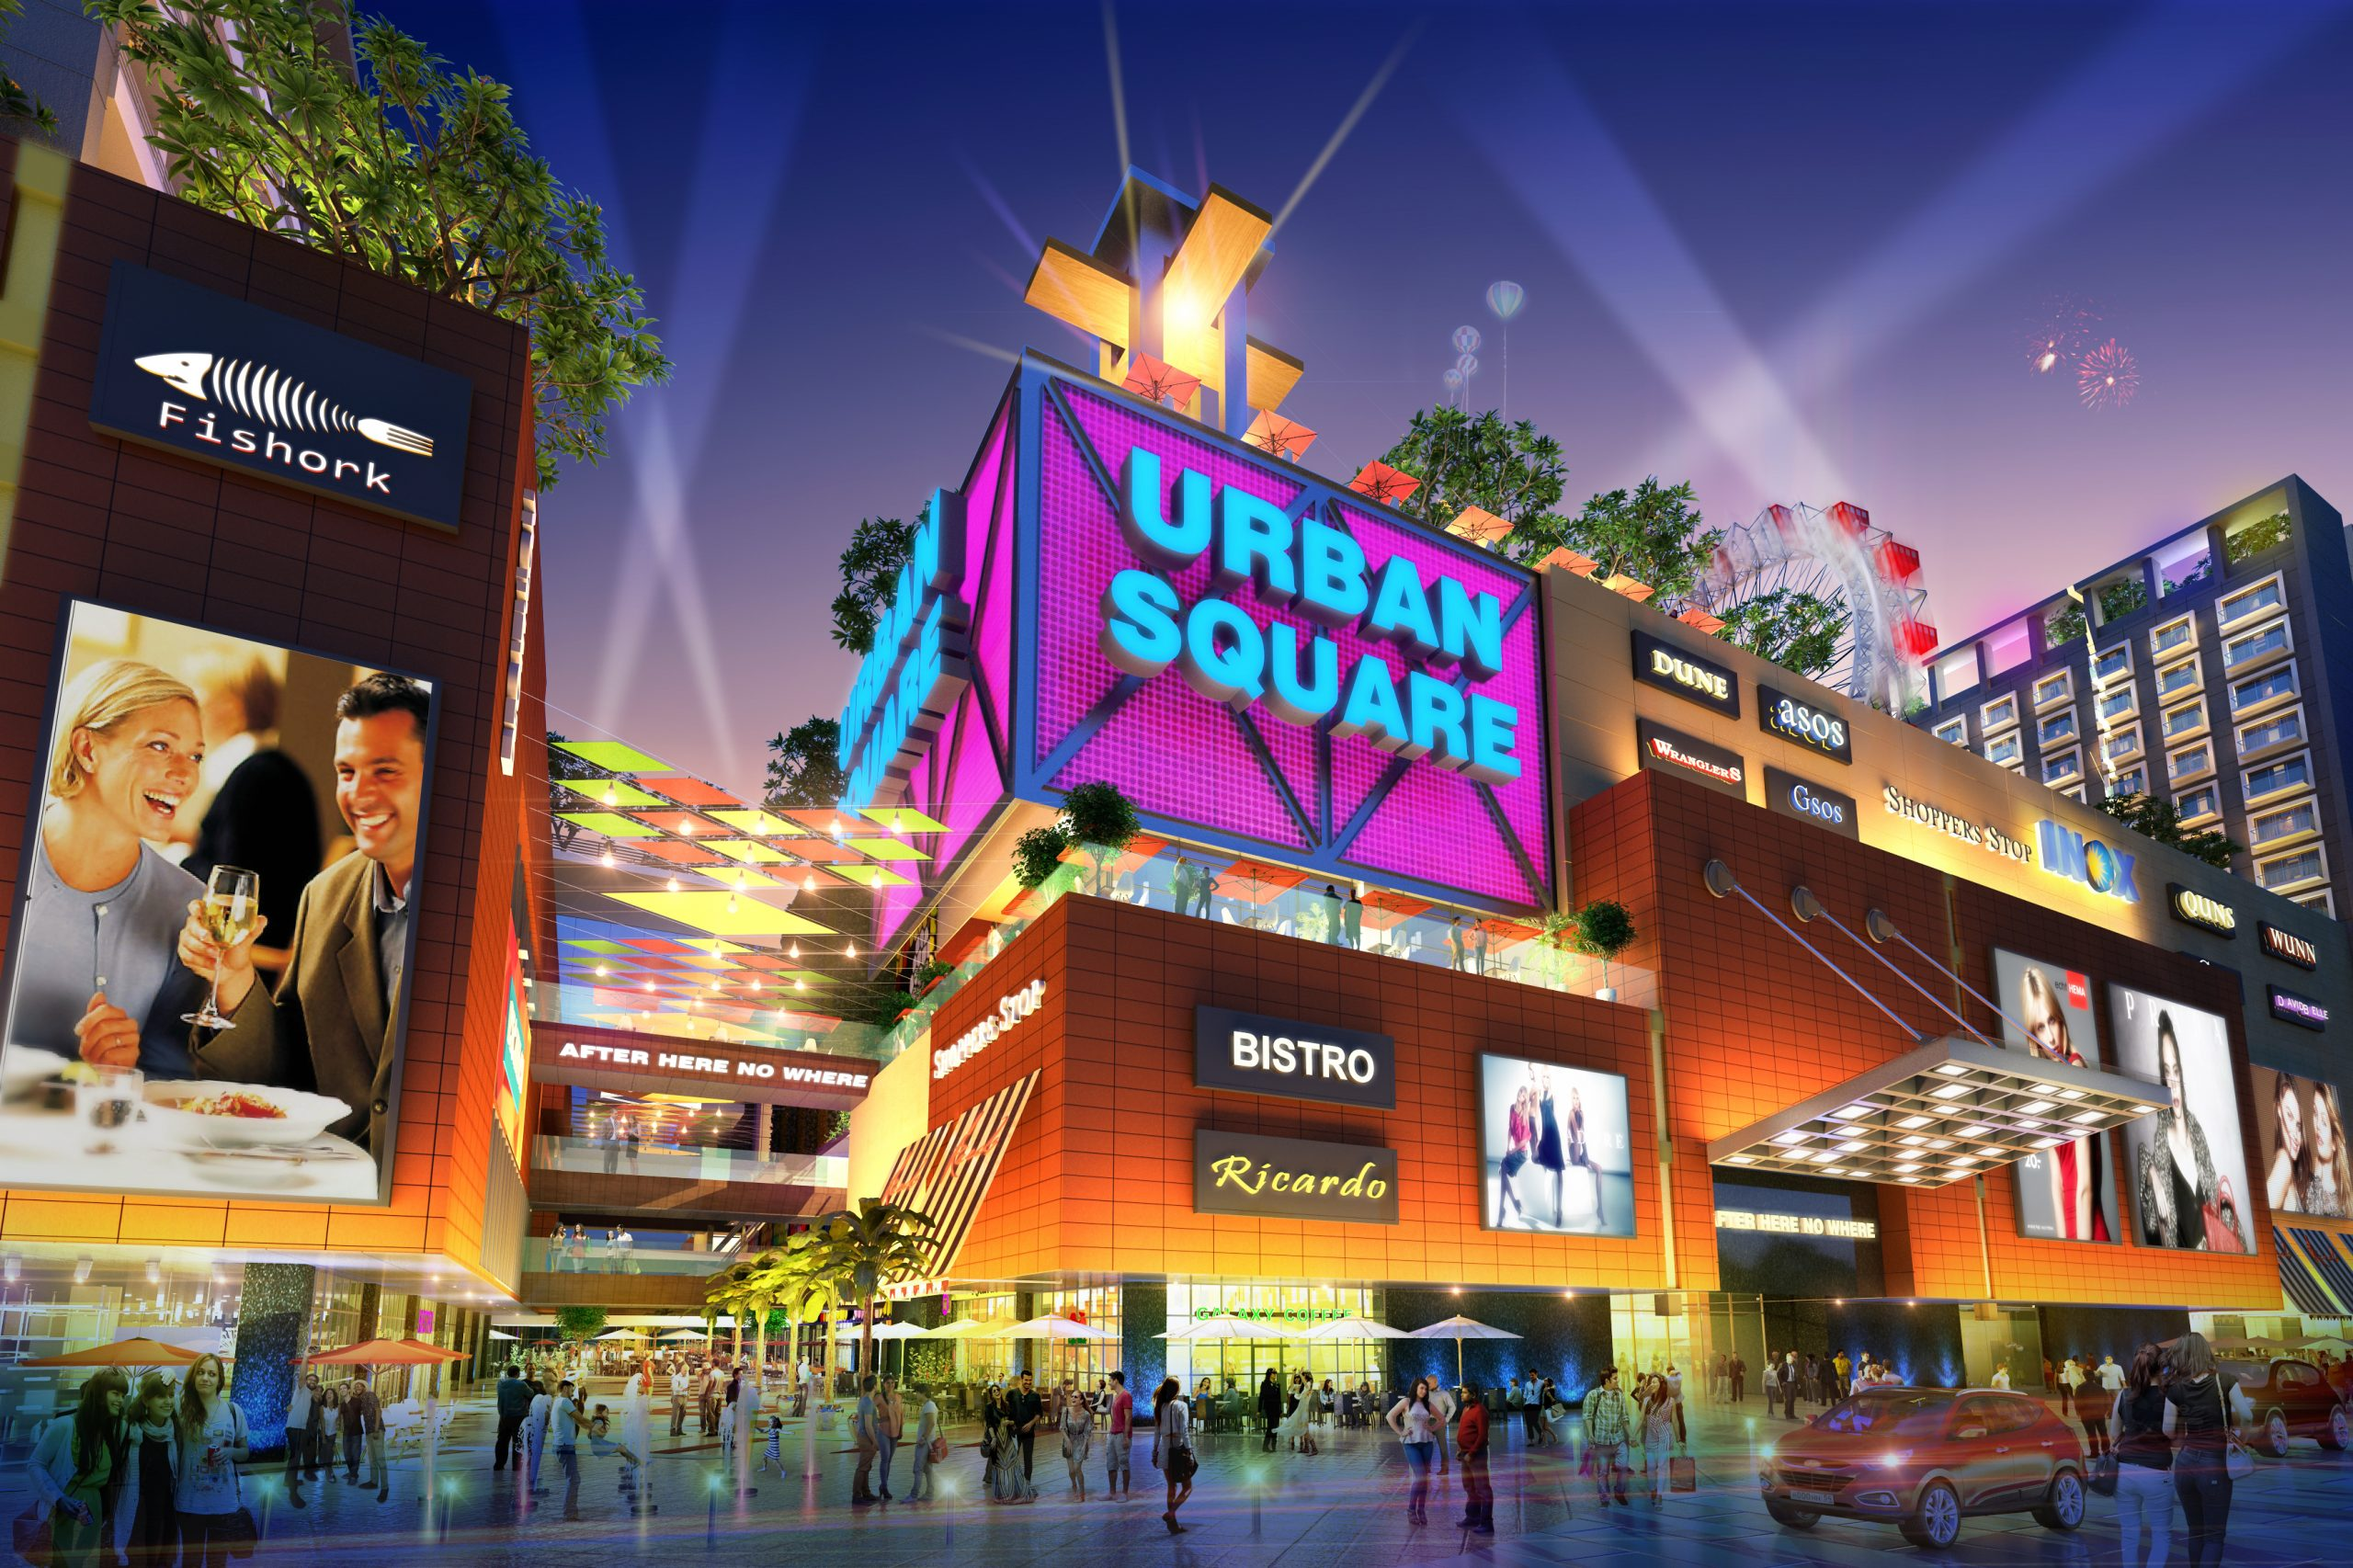 Bengaluru based research firm gives 5-star rating to Udaipur-based Urban Square Mall